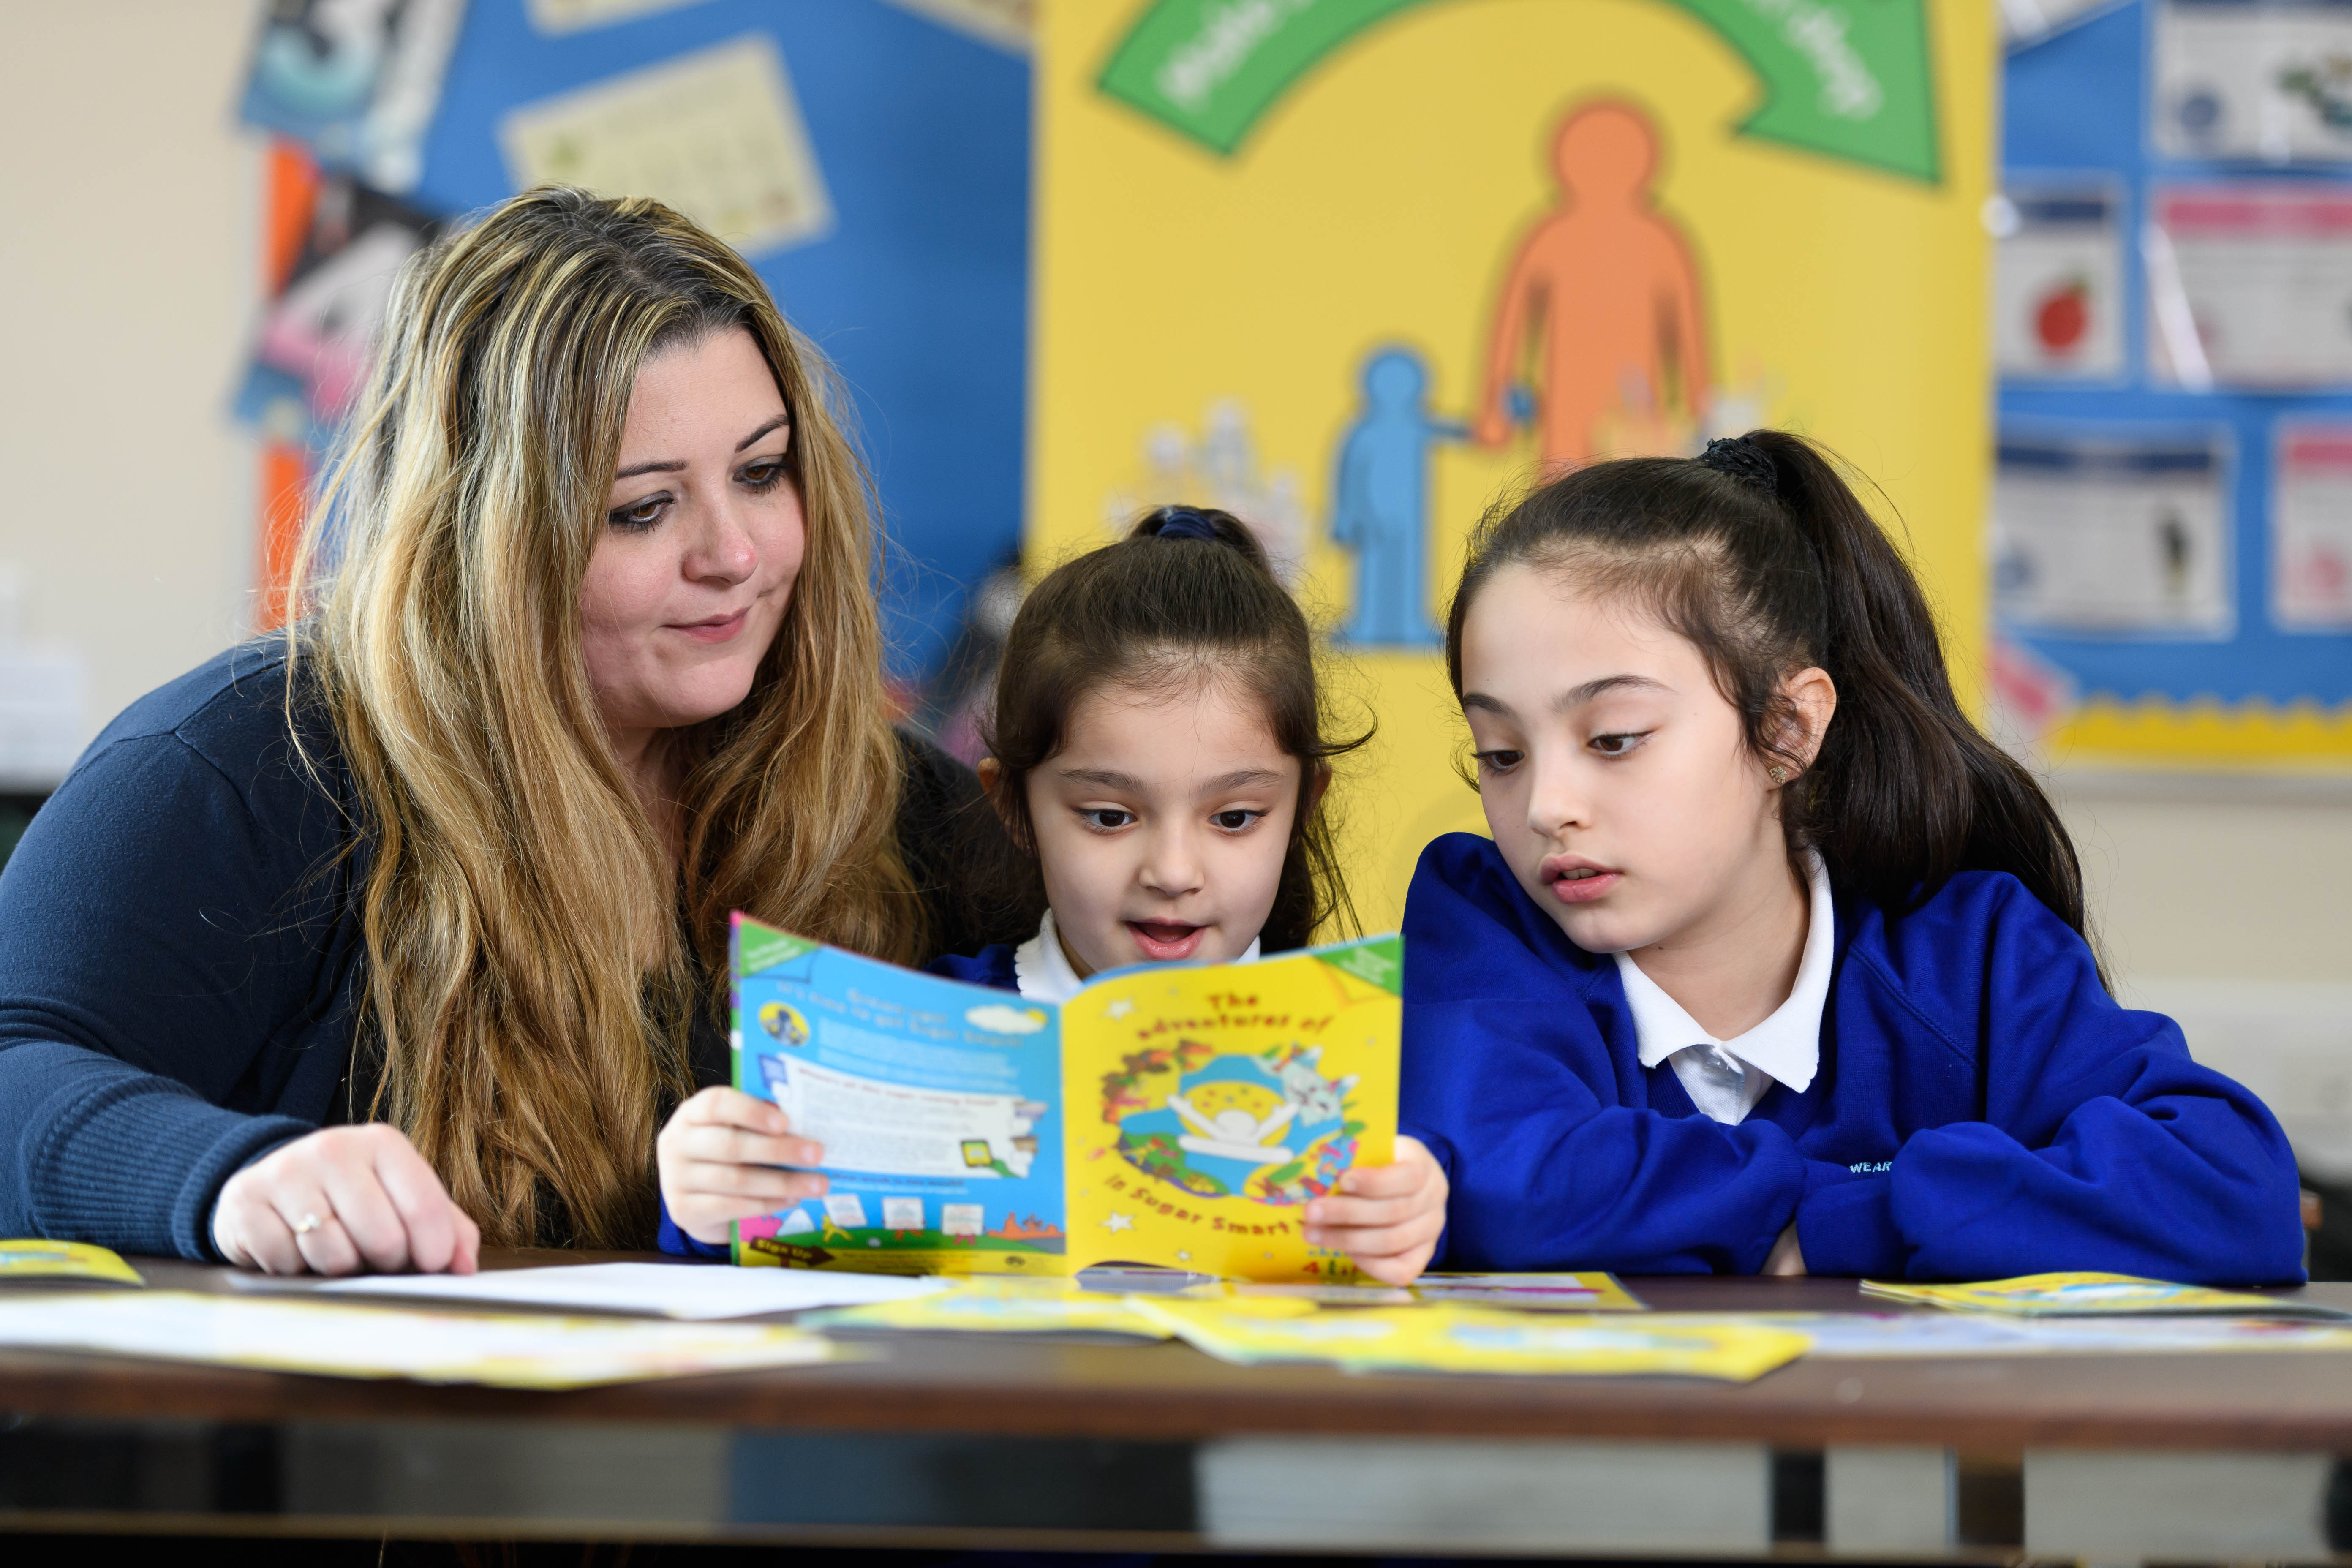 Teaching pupils and families about health and wellbeing